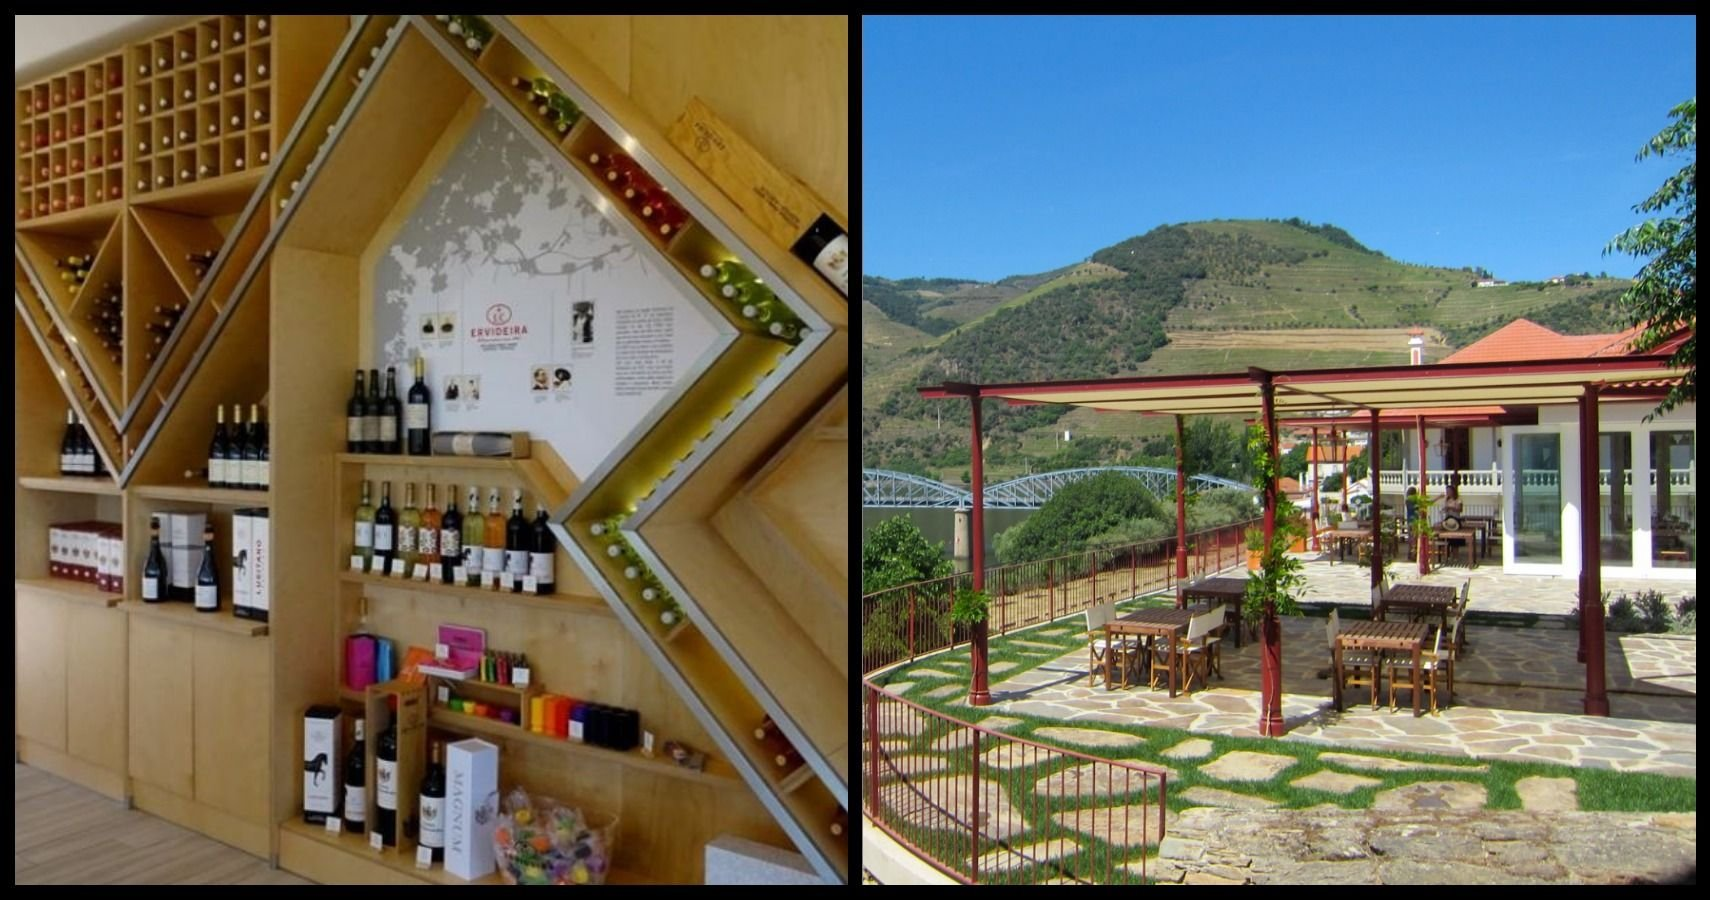 10 Best Wineries In Portugal To Visit